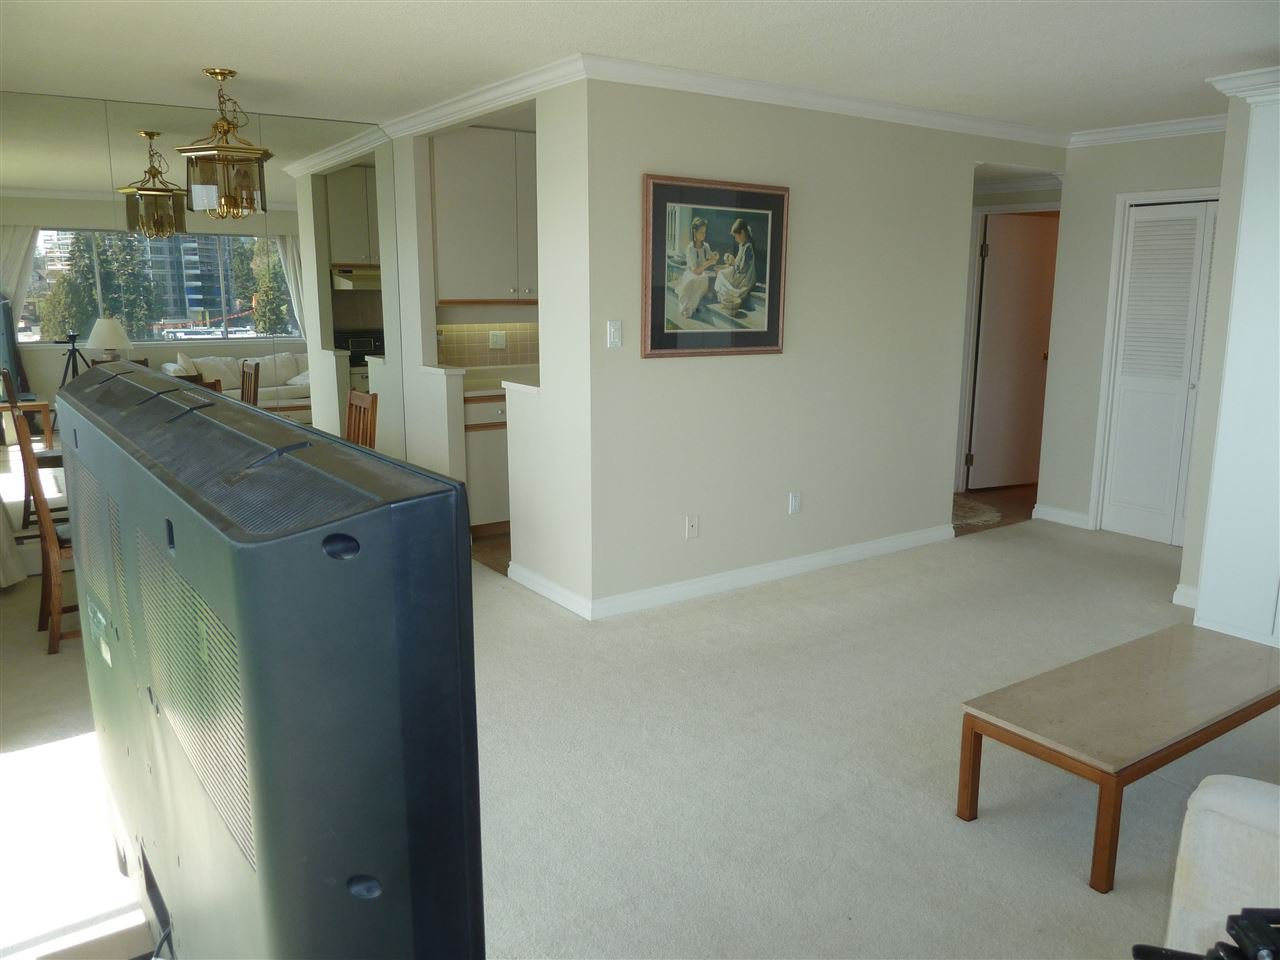 Photo 4: Photos: 905 150 24TH Street in West Vancouver: Dundarave Condo for sale : MLS®# R2427493